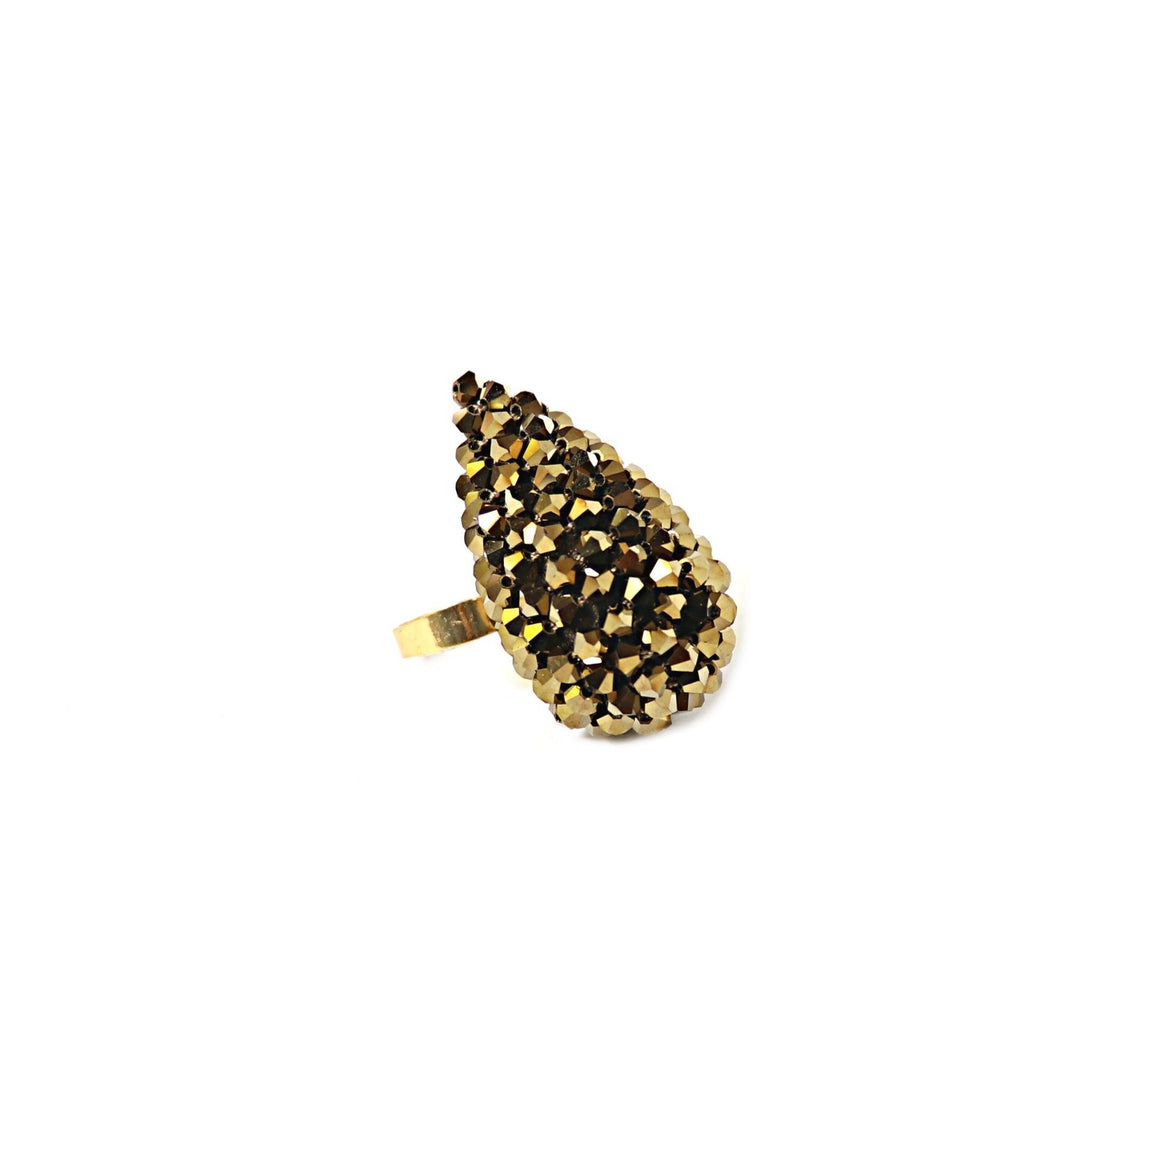 Alexis Finger Ring - Large Antique Gold